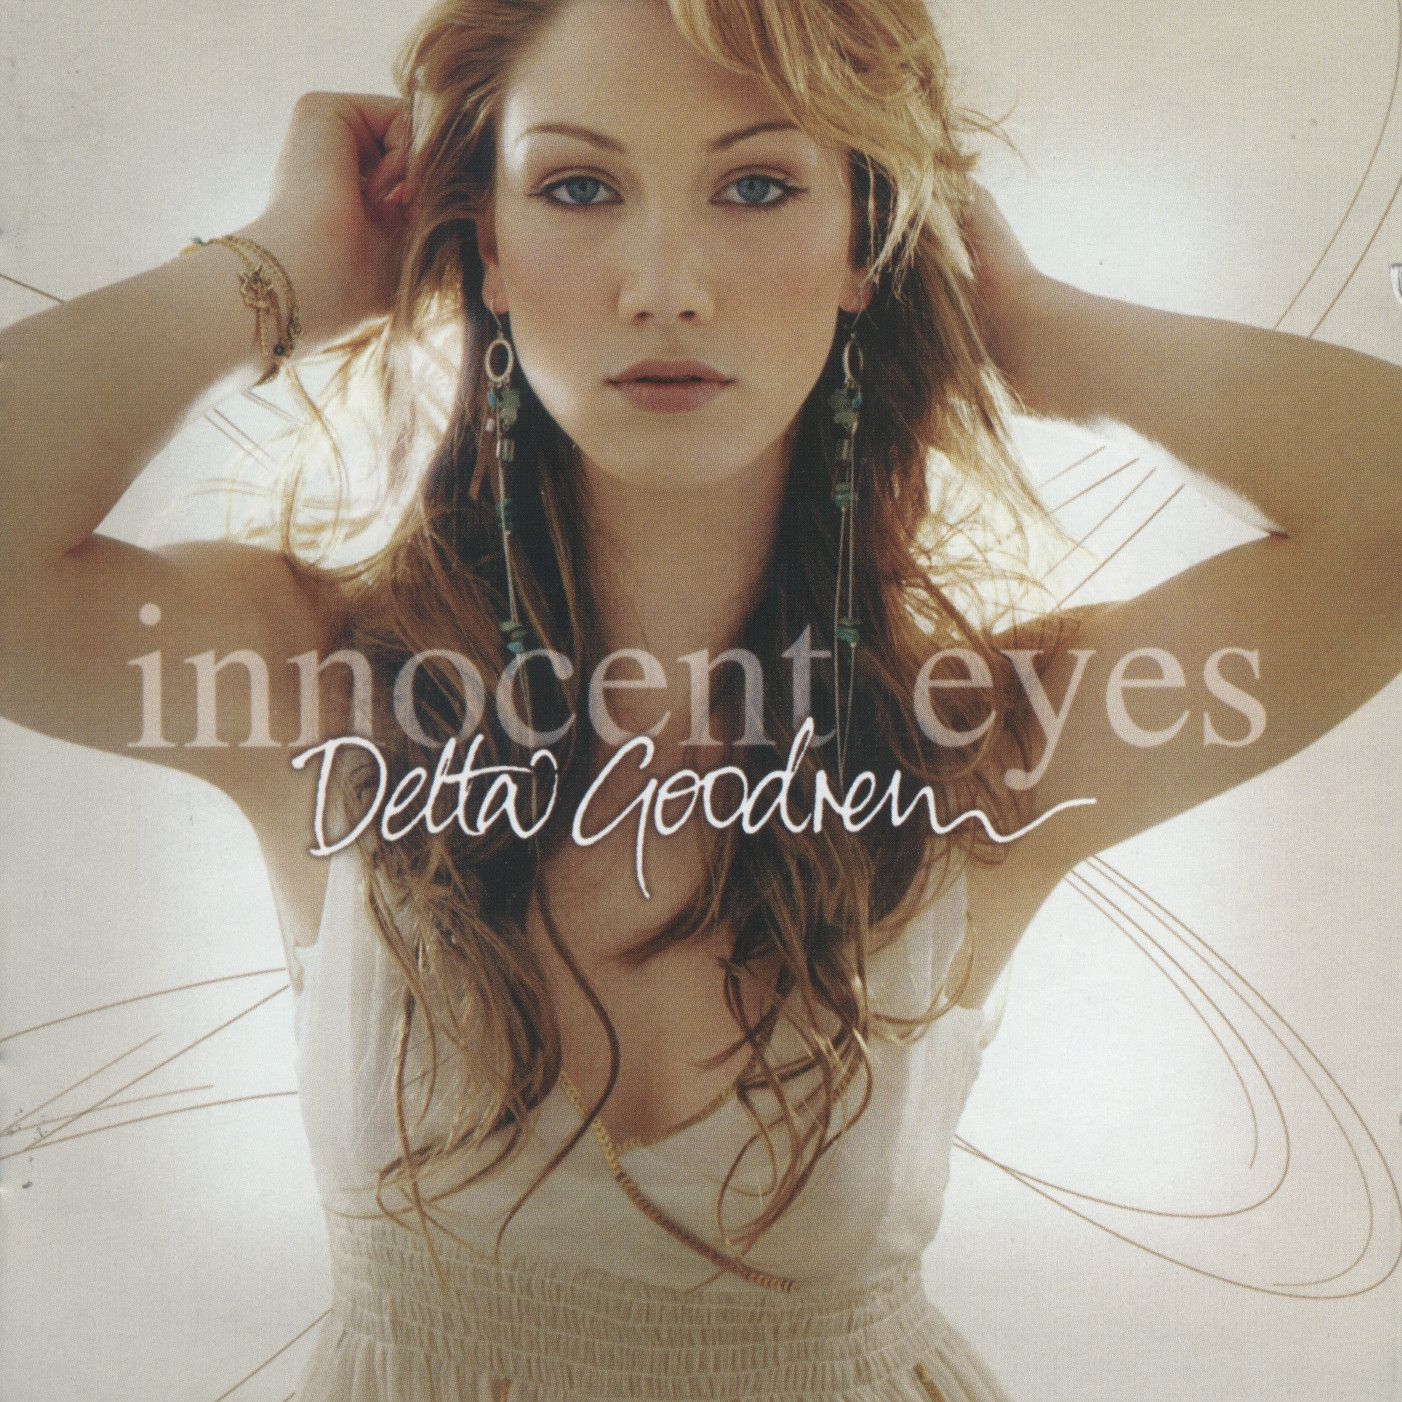 Delta Goodrem - Innocent Eyes album cover